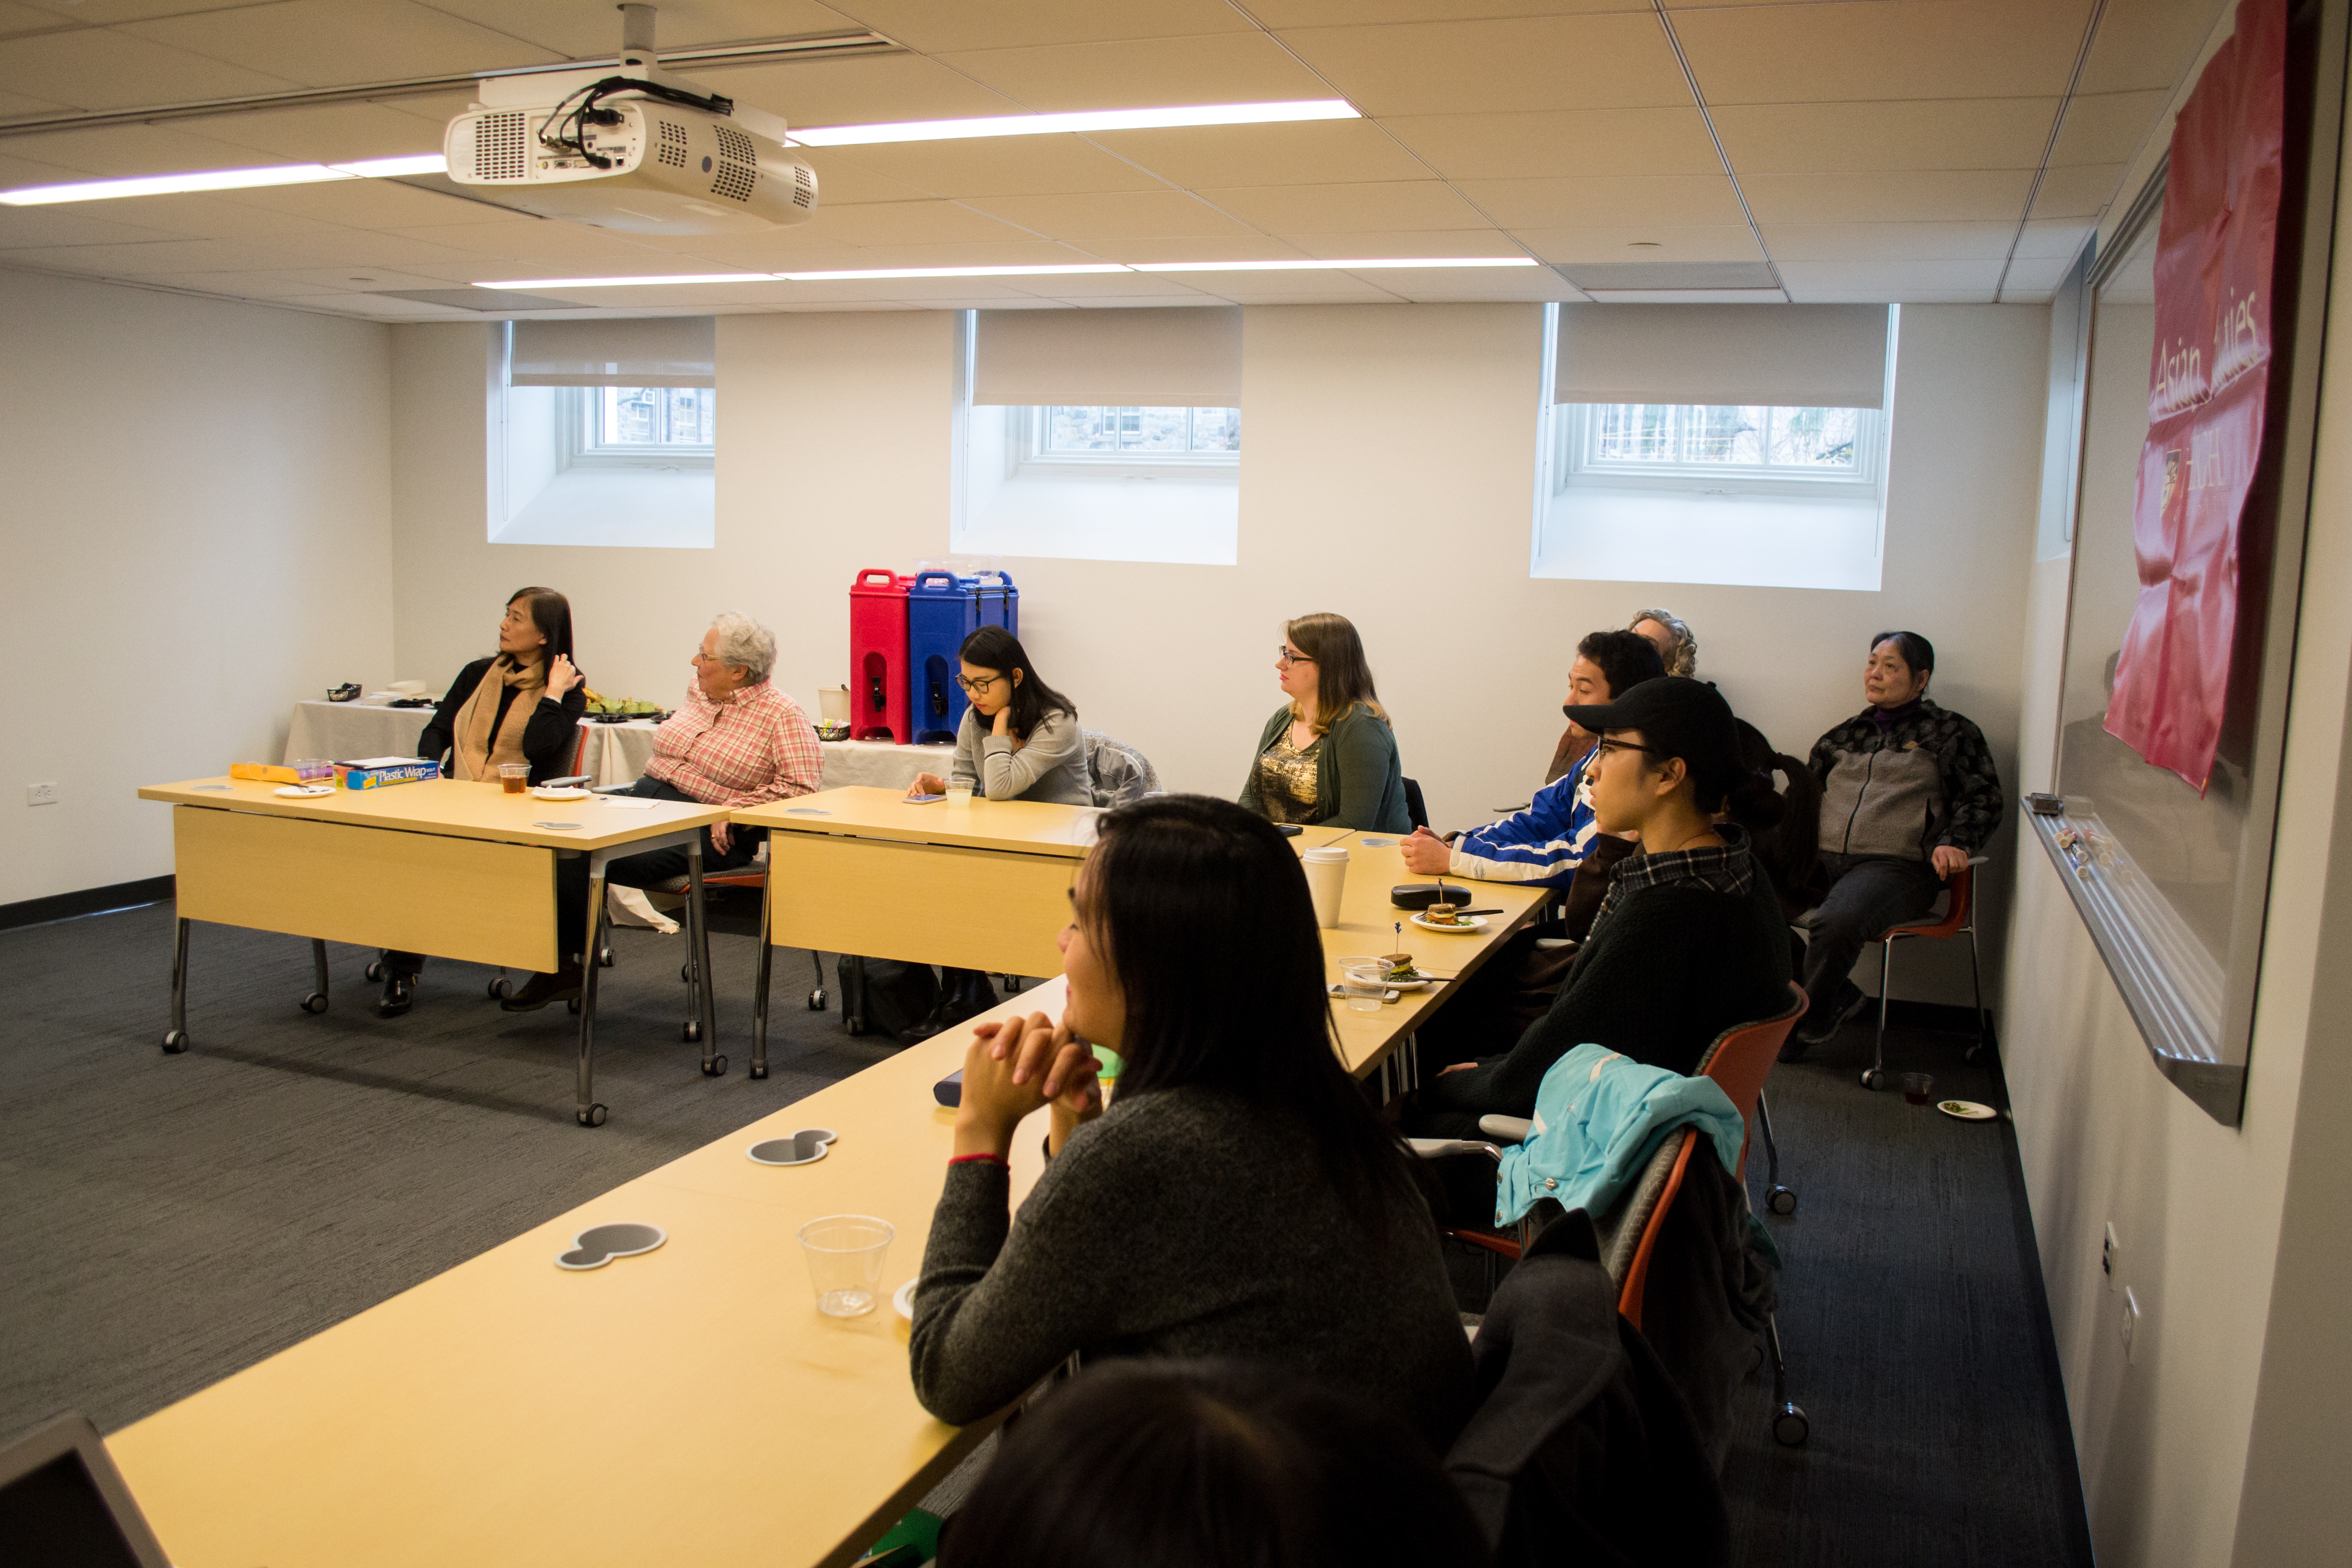 Students and faculty of Lehigh University attending the Asian Studies Spring Social